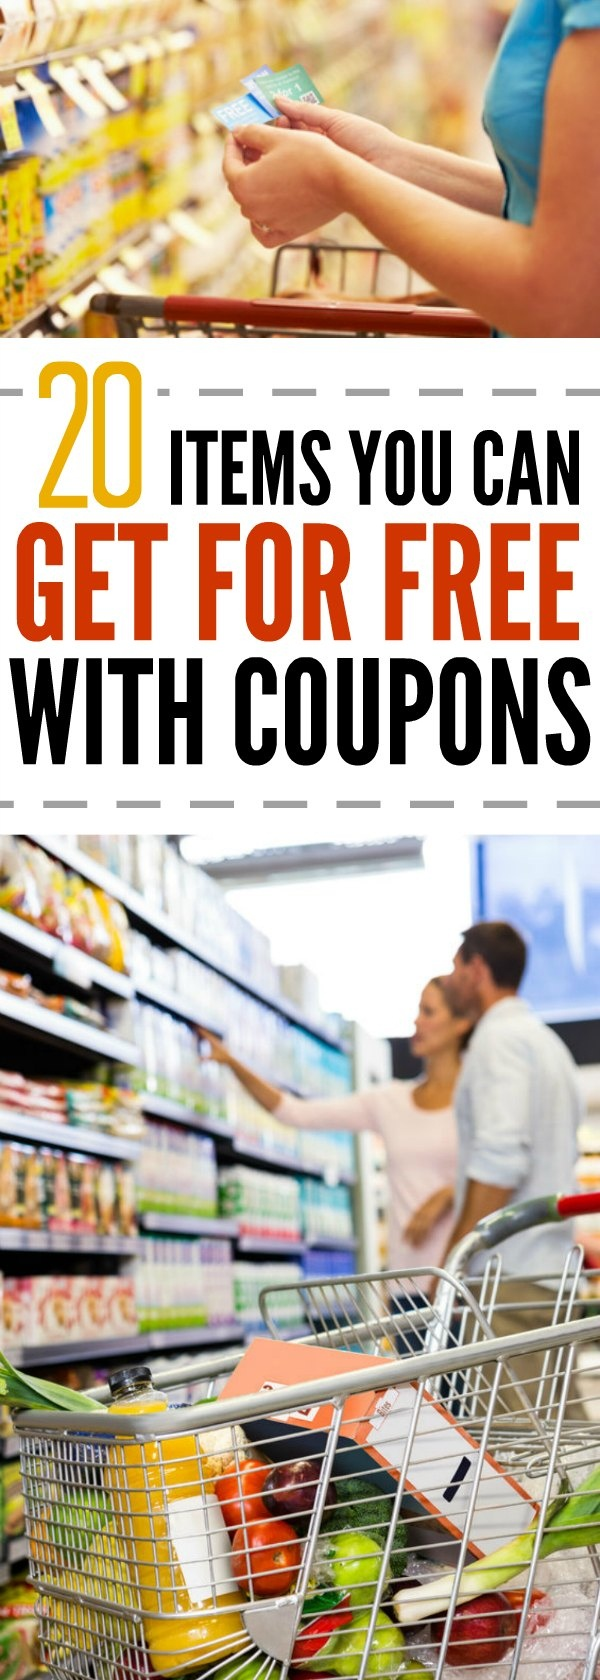 Where Can You Get Coupons For Free : 1800 Flowers Free Shipping Coupon - Golden Corral Coupons Buy One Get One Free Printable